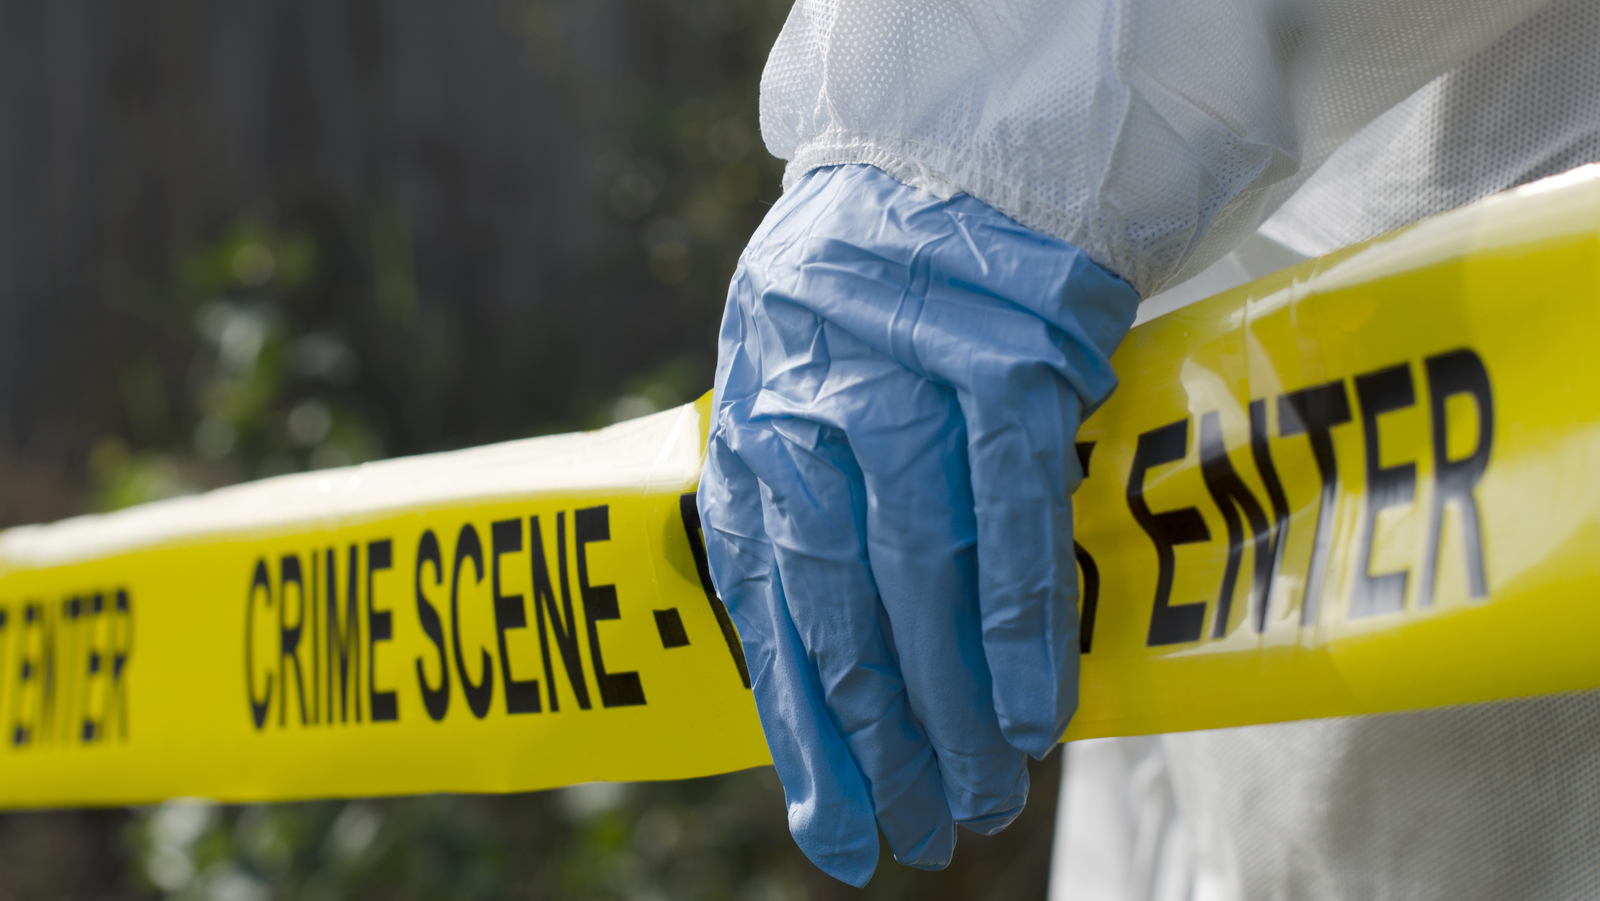 Yellow crime scene tape held by gloved hand